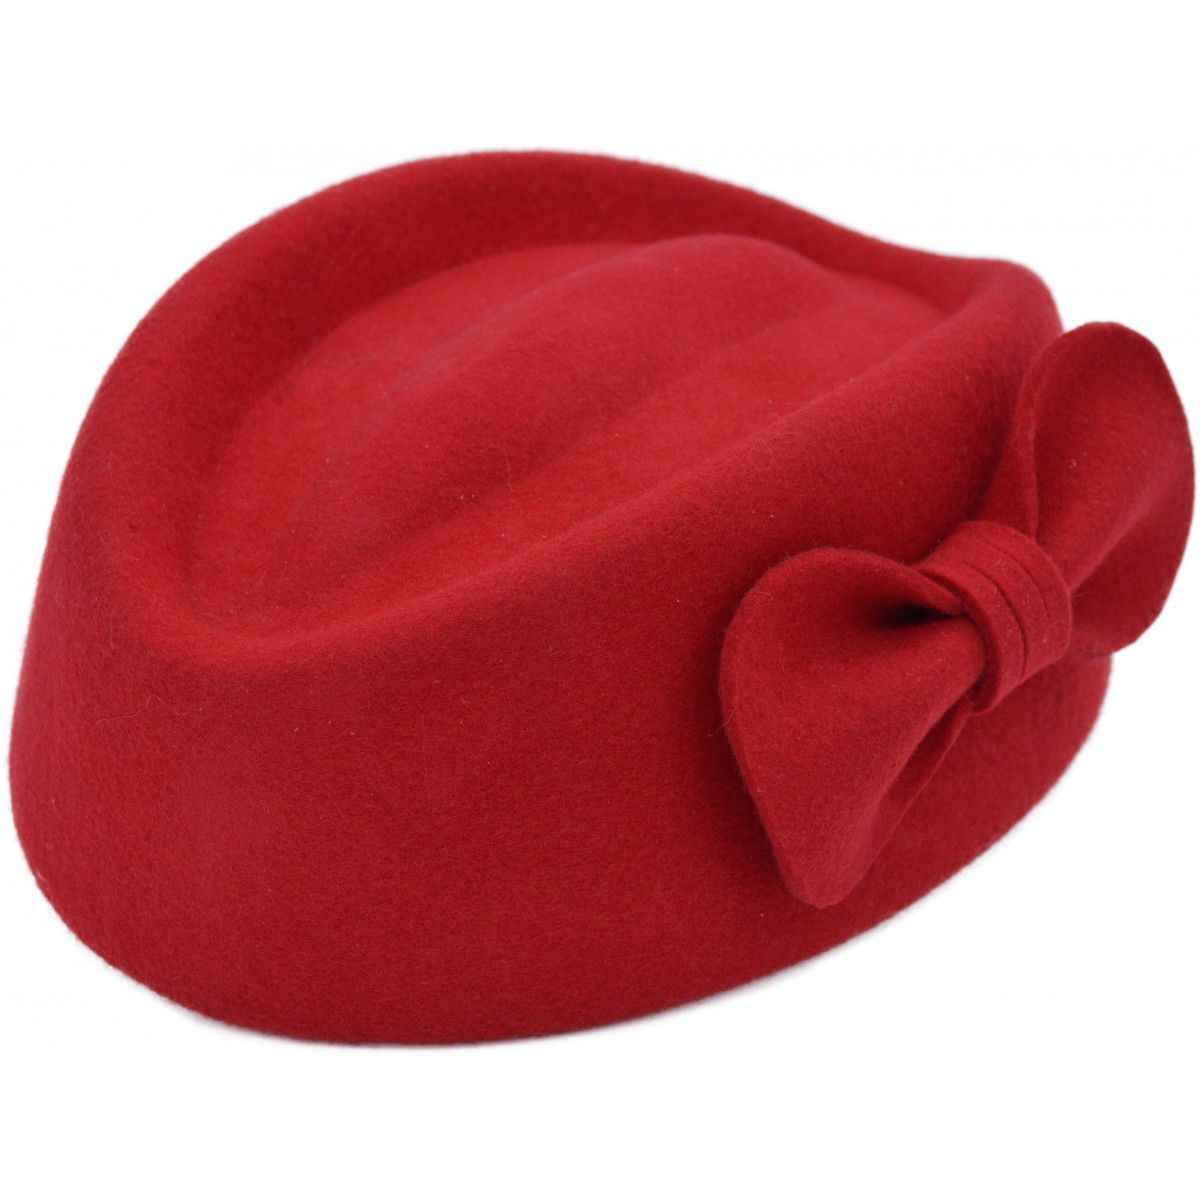 eae2762r_chapeau-retro-pin-up-40-s-50-s-glam-chic-clara-rouge